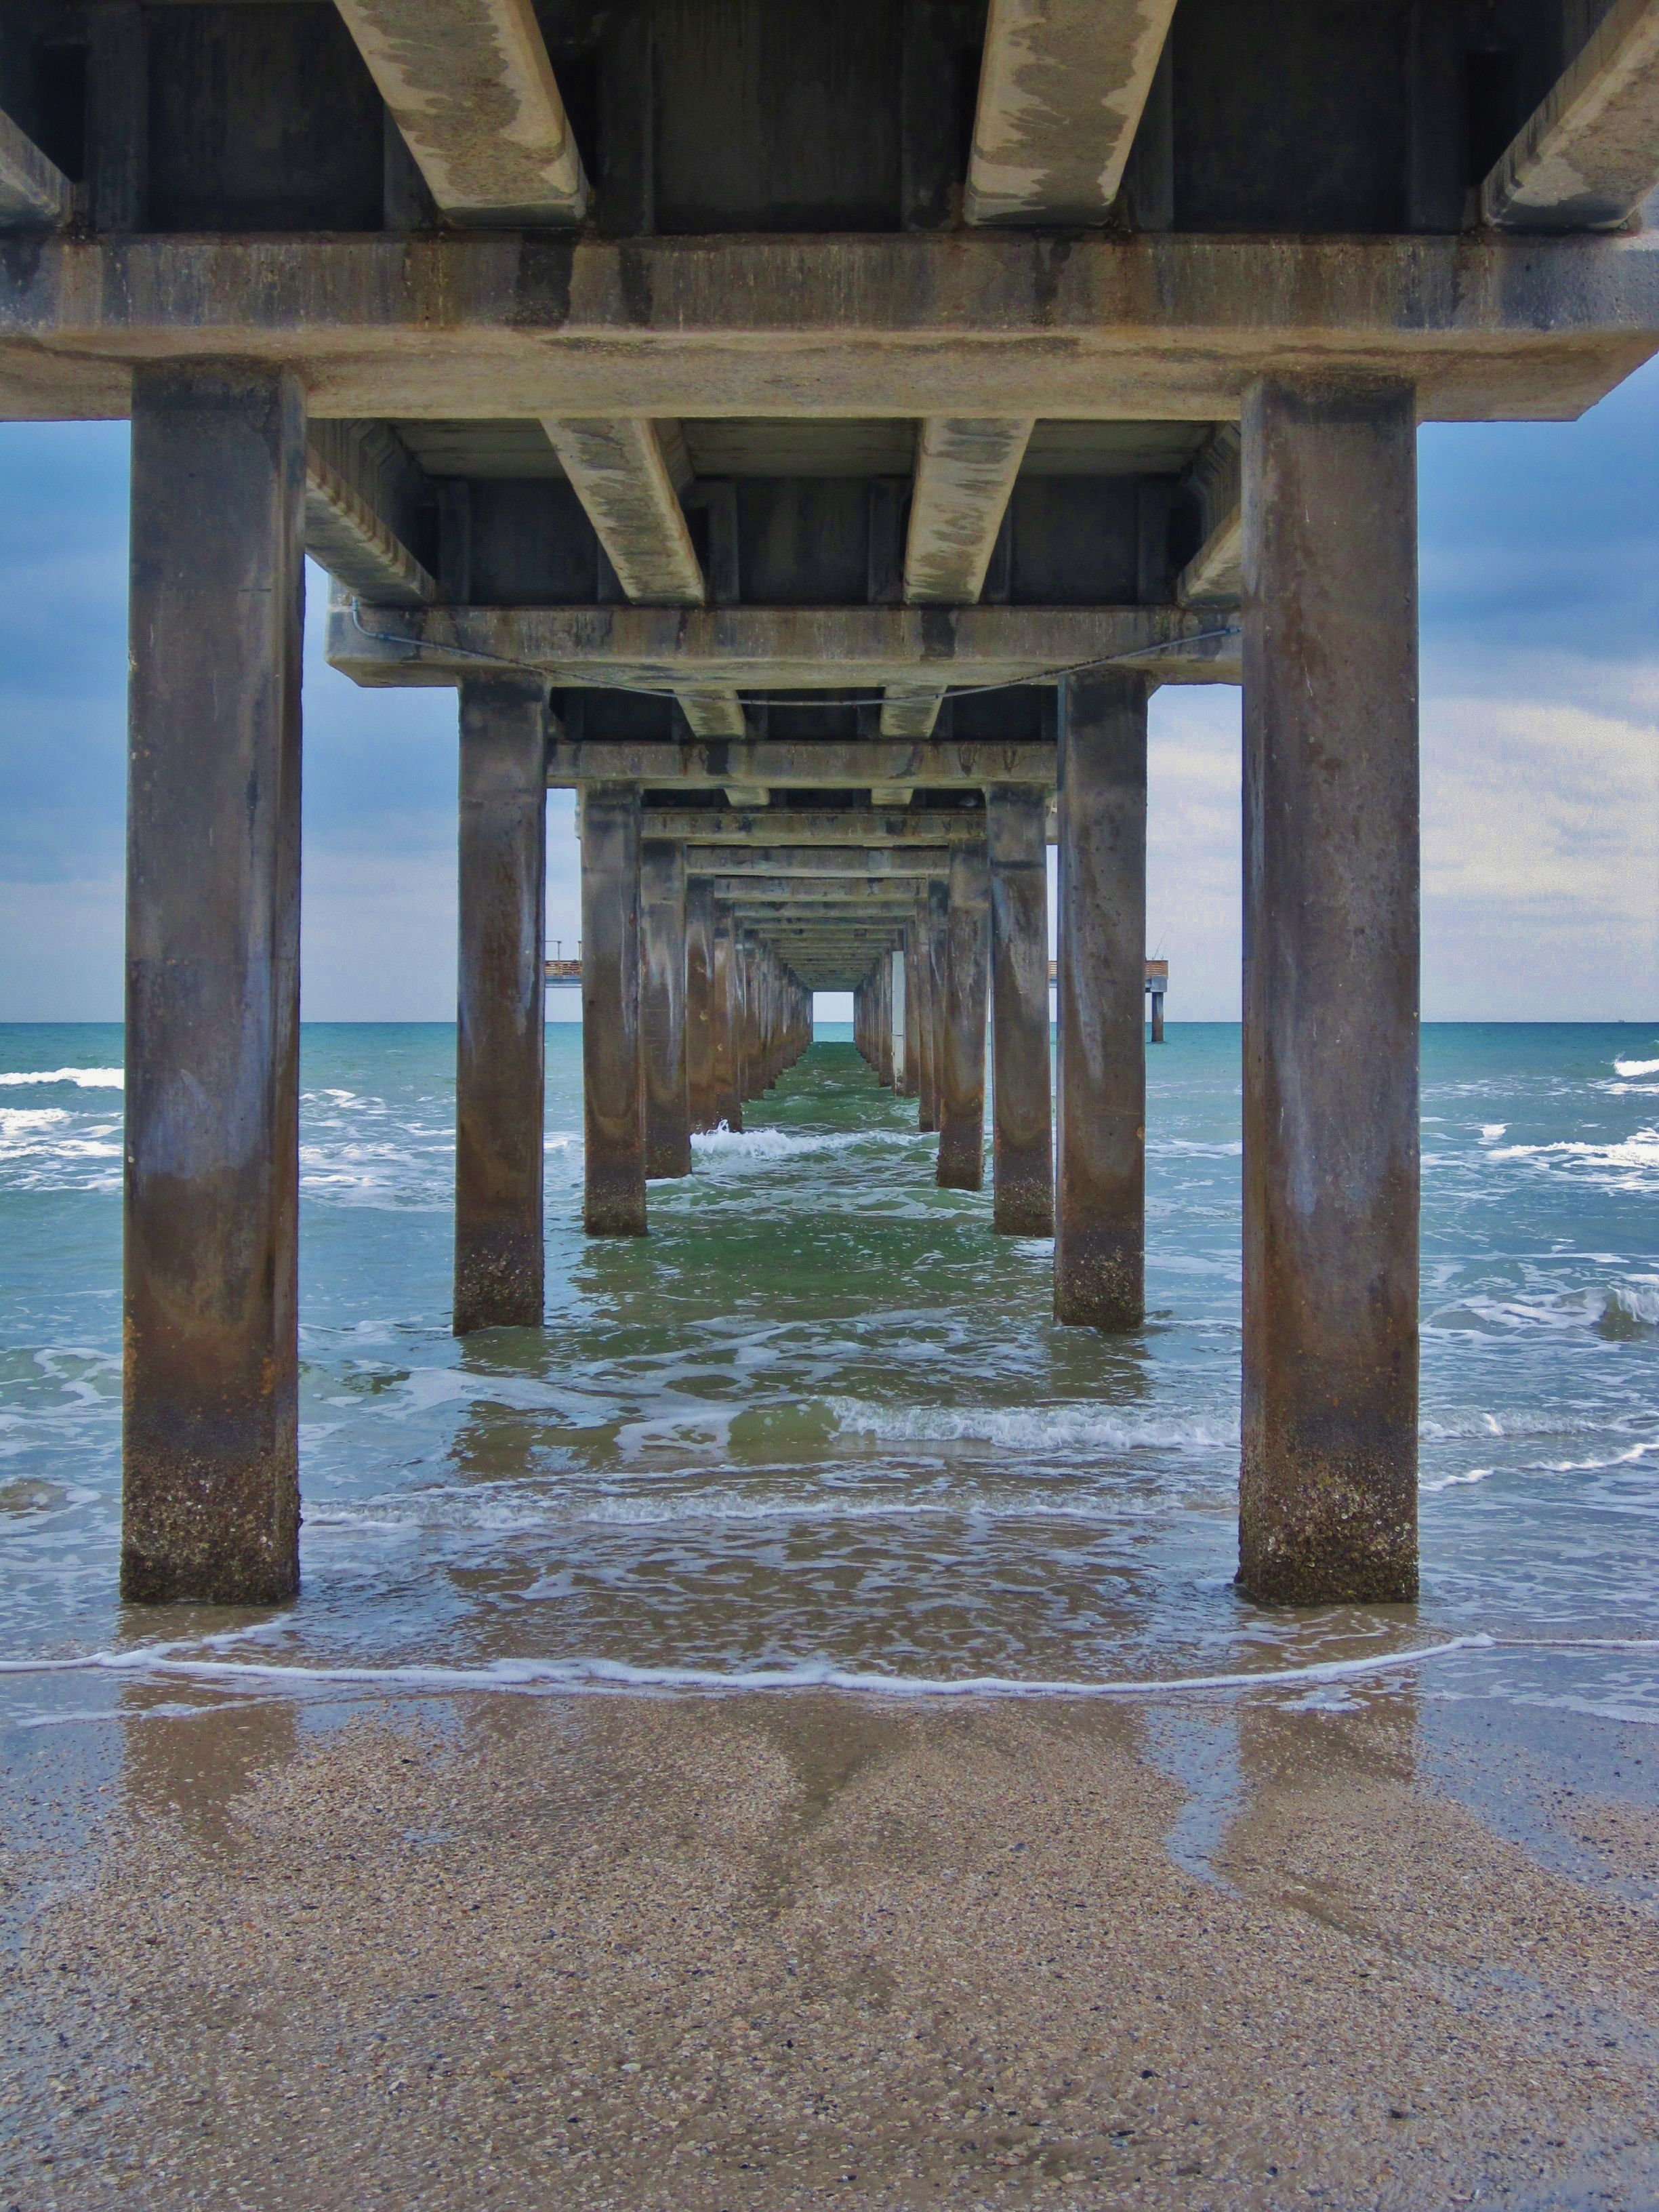 Pin By Romina Guerrero On Been There Done That Texas Beaches Port Aransas Texas Port Aransas